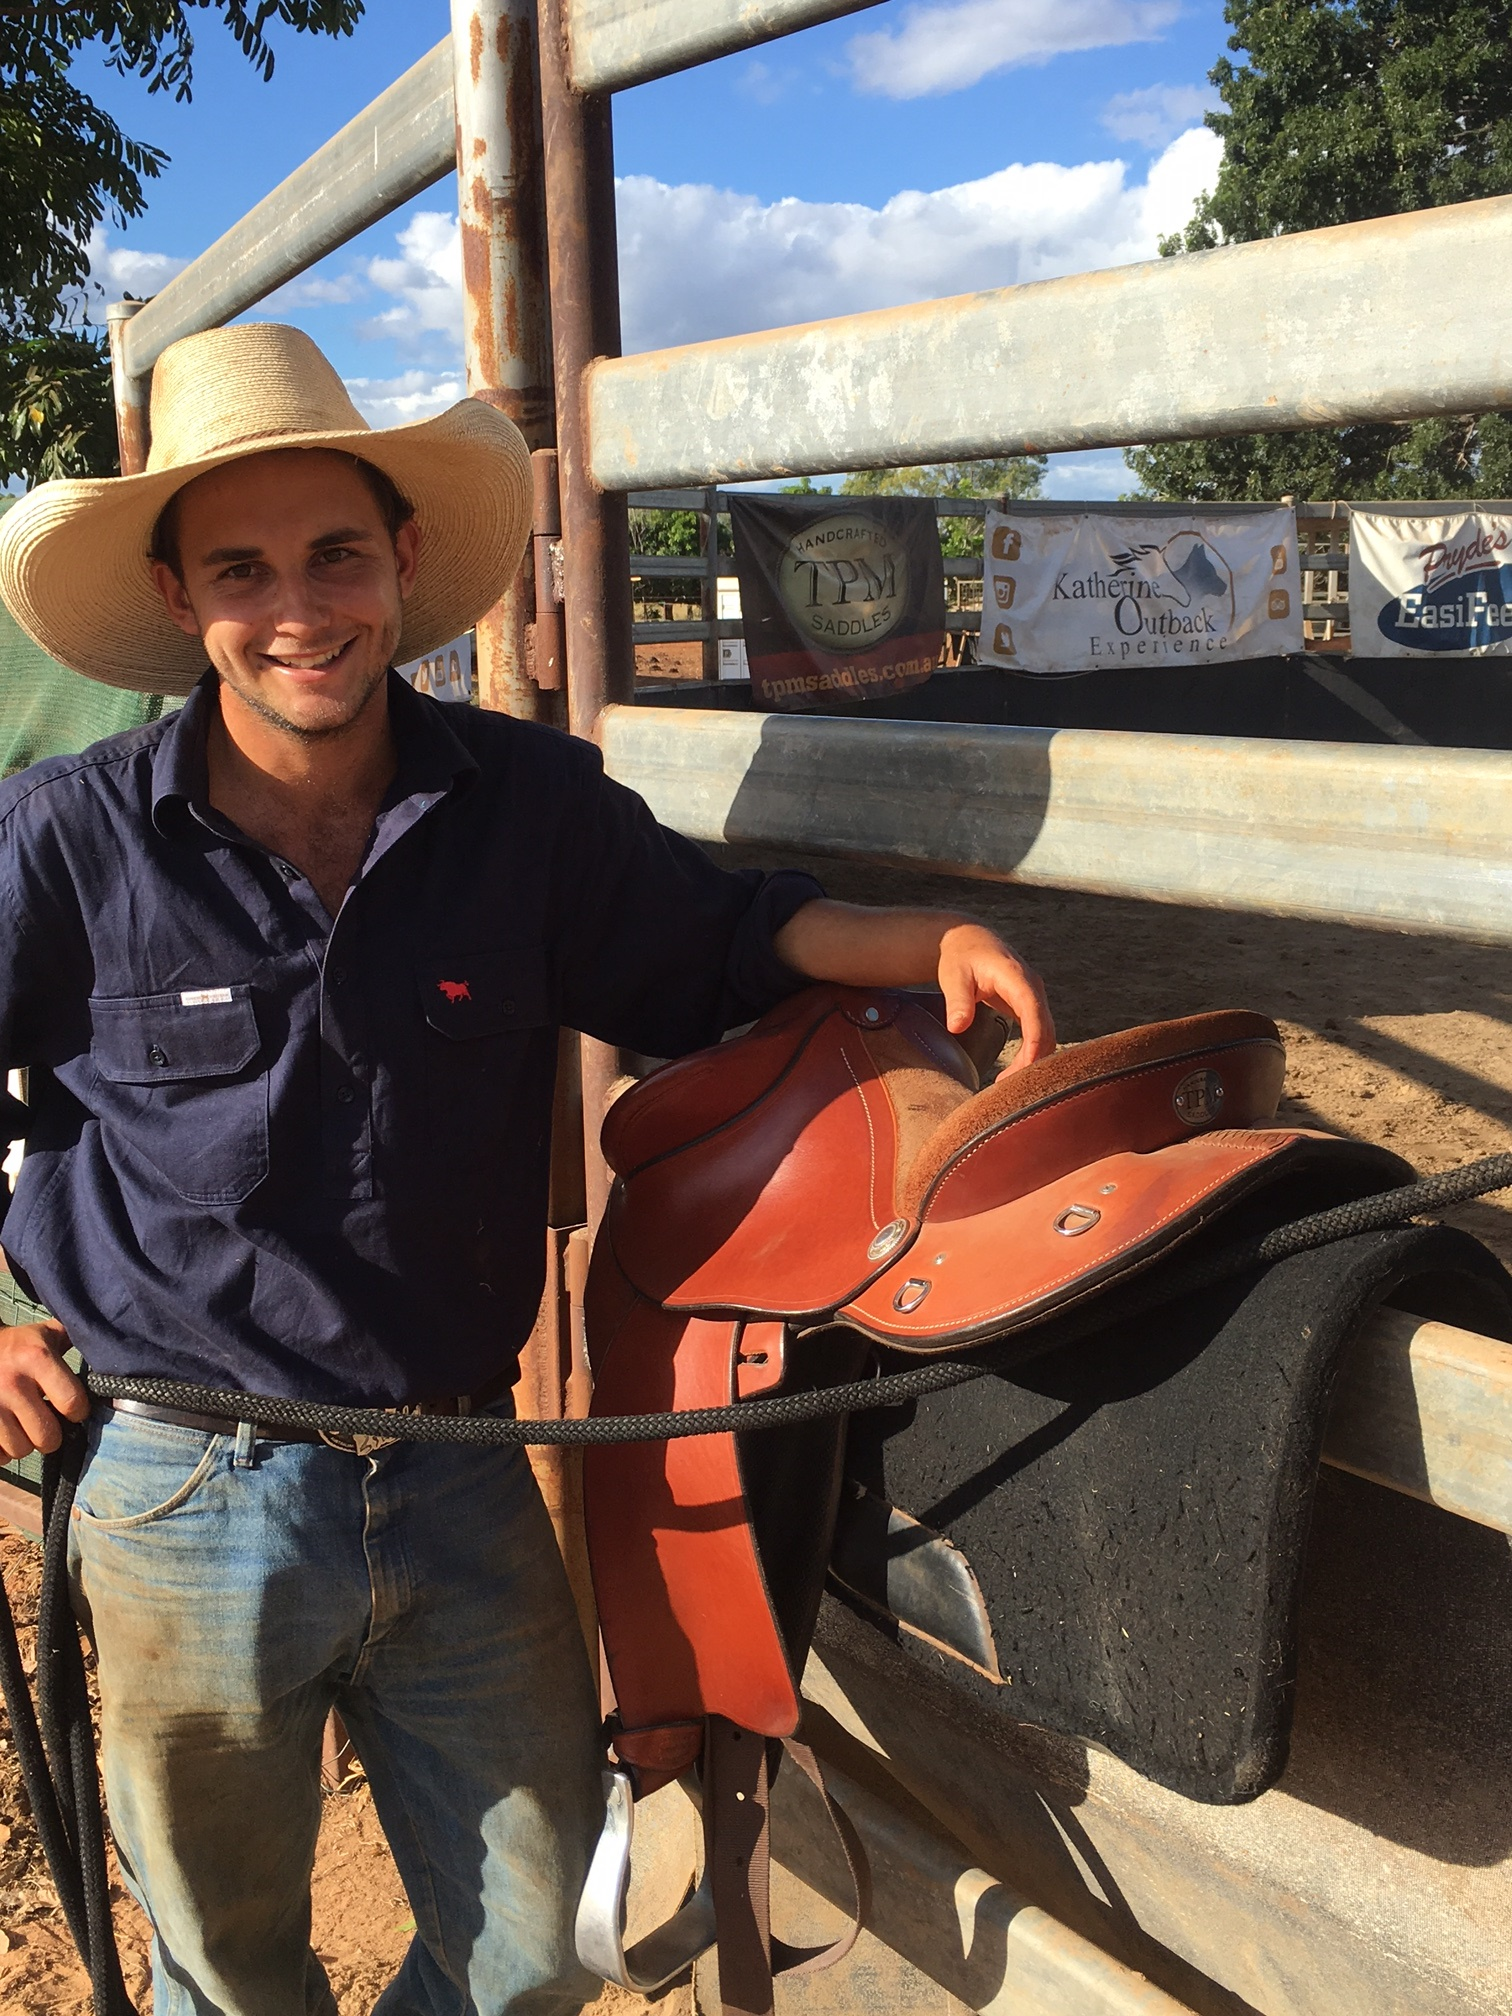 Brad of Katherine Outback Experience with his TPM Saddle